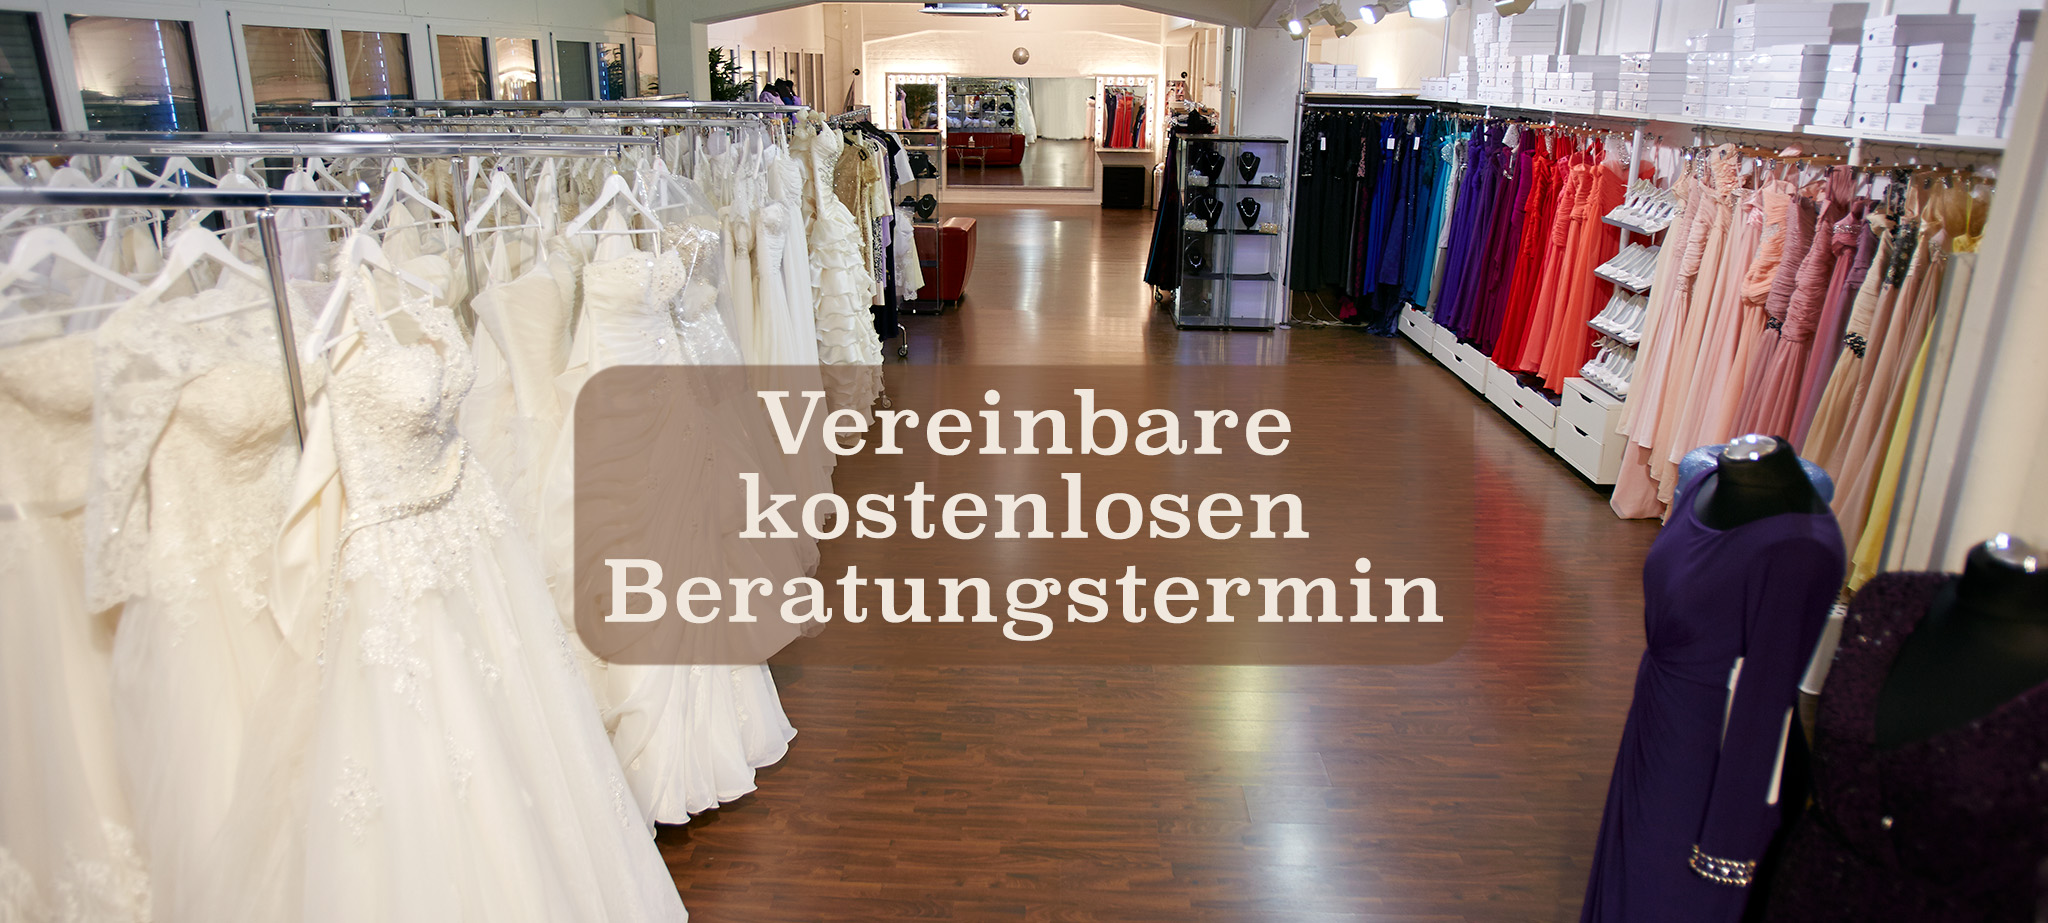 Showroom Zürch - Brautmode/Abendkleider  Samyra Fashion